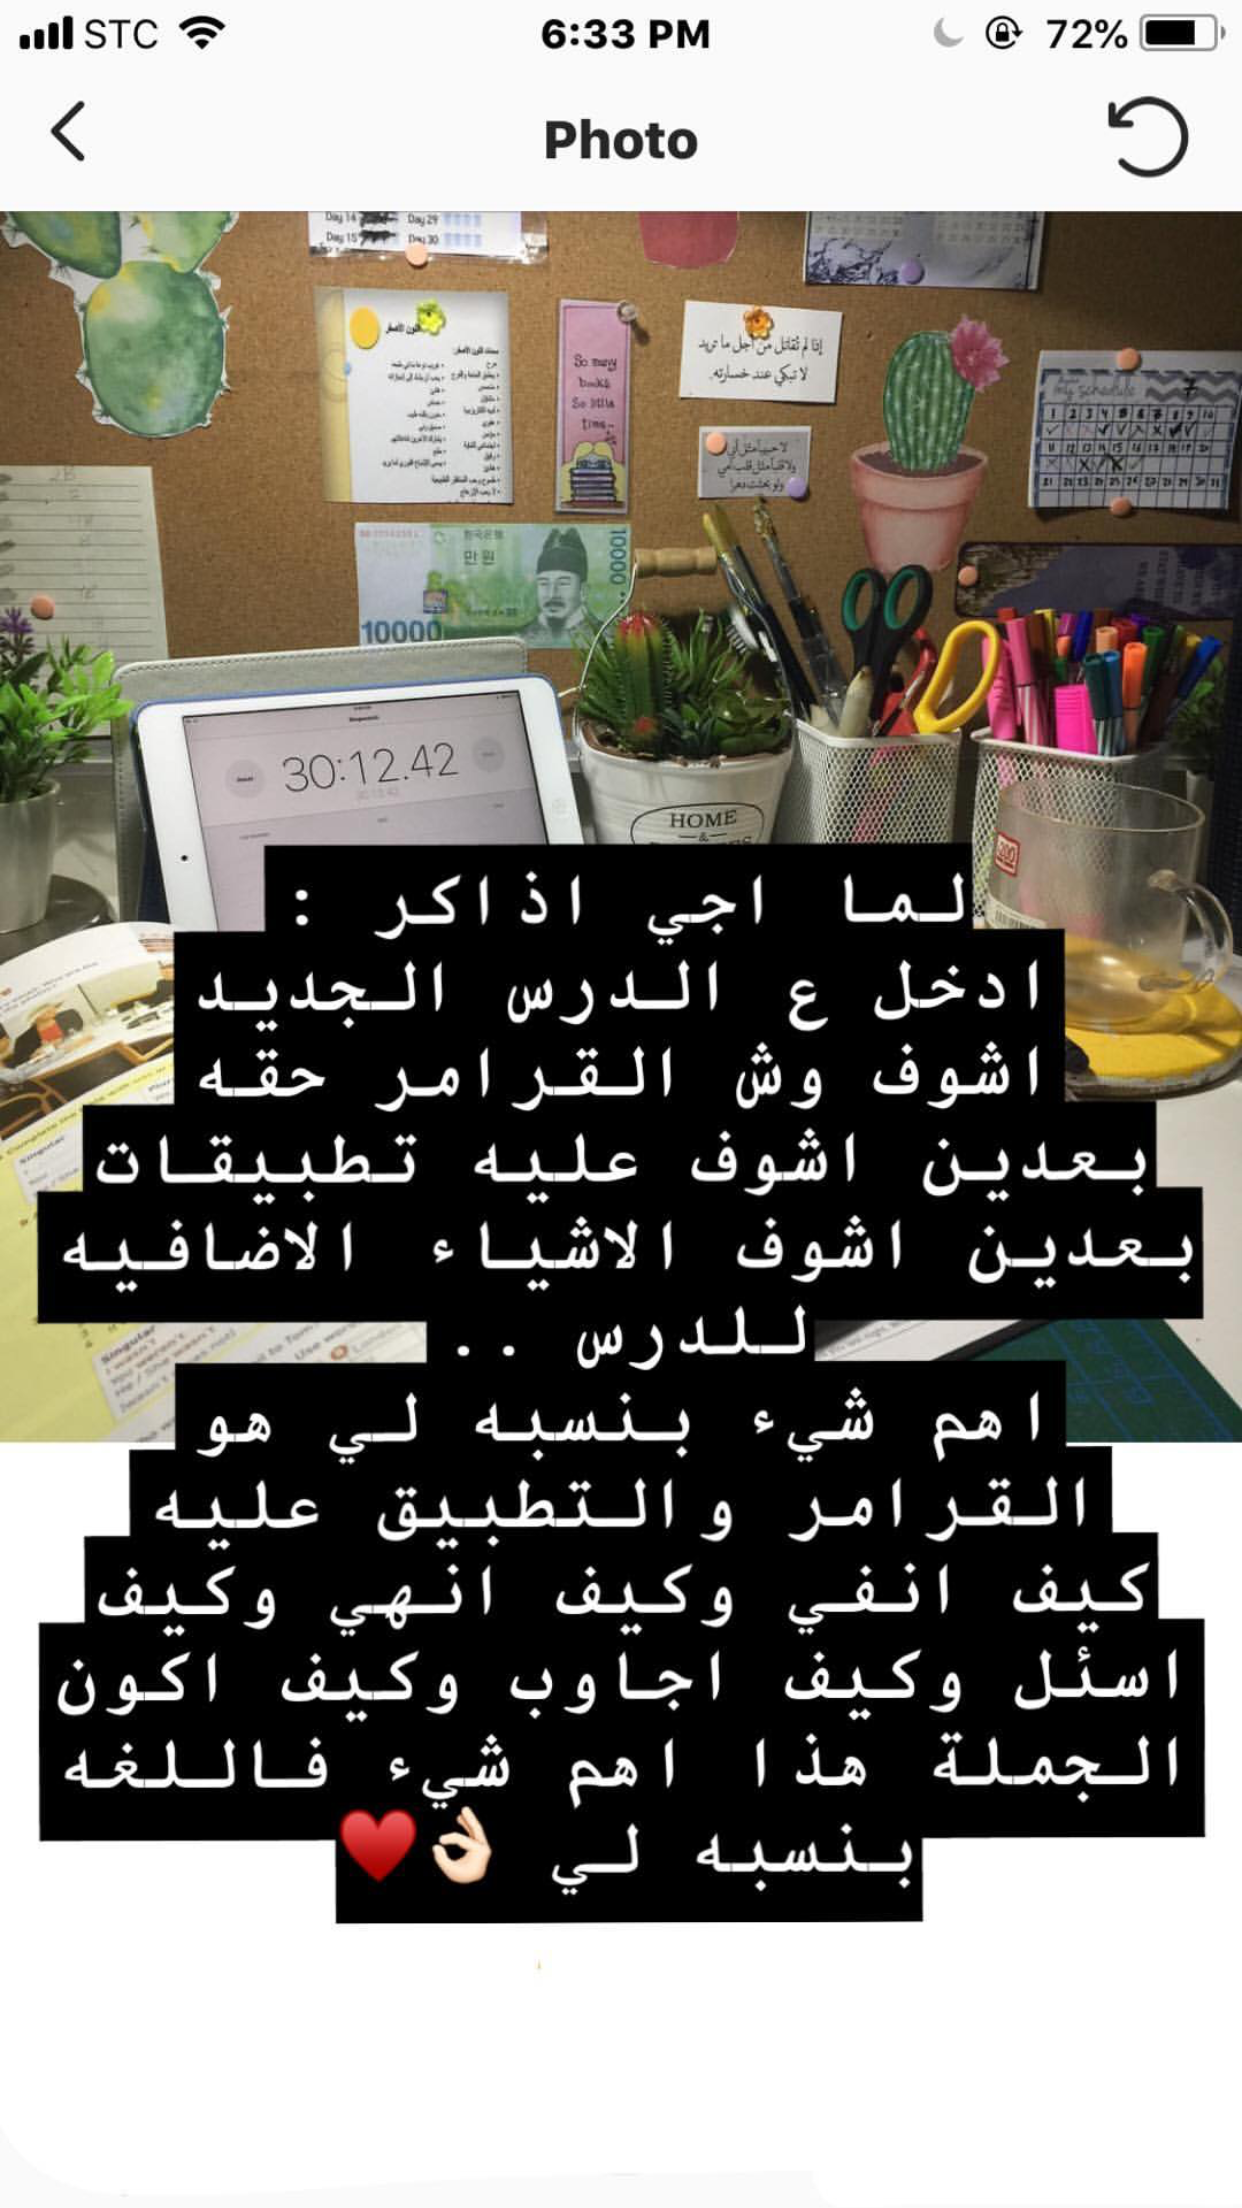 Pin By Zinouba On Educational Lessons Learn English Words Instagram Story Ideas English Words